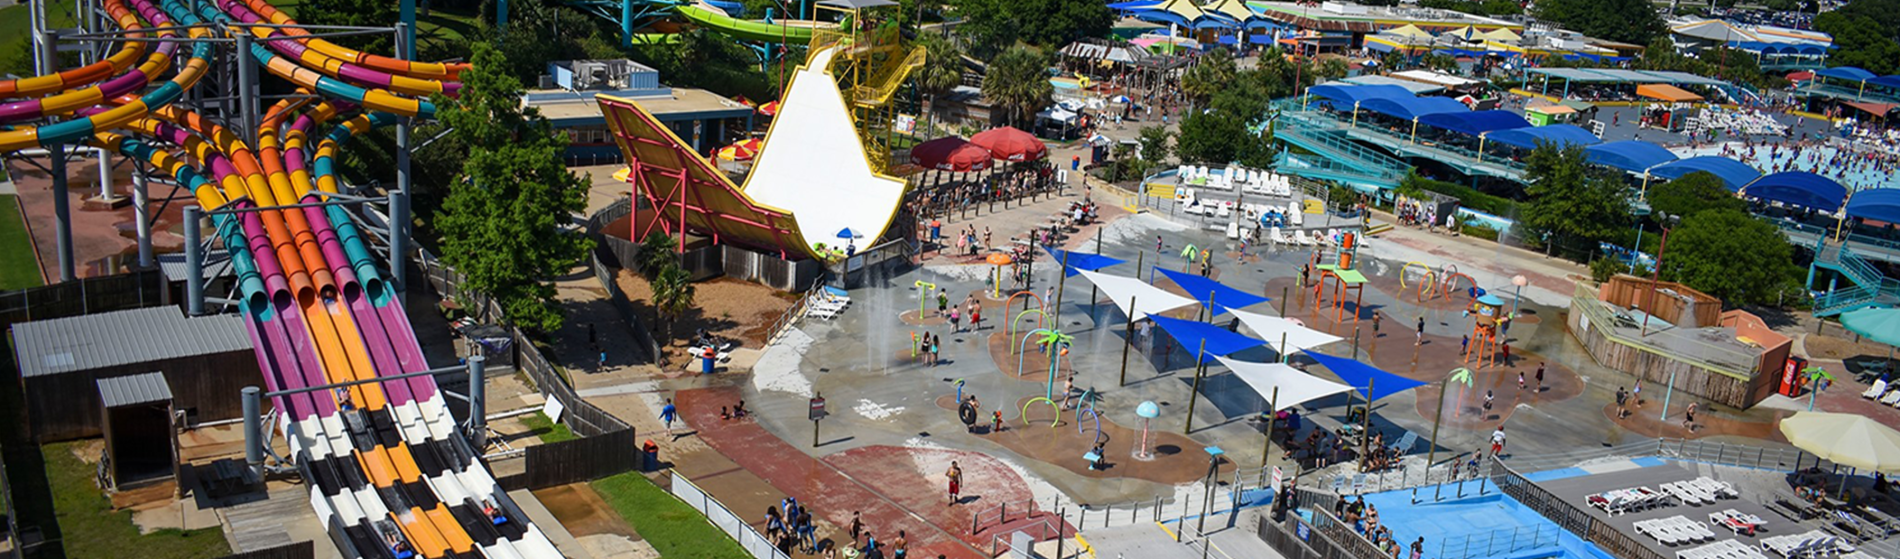 Hurricane Harbor aerial photo of water park